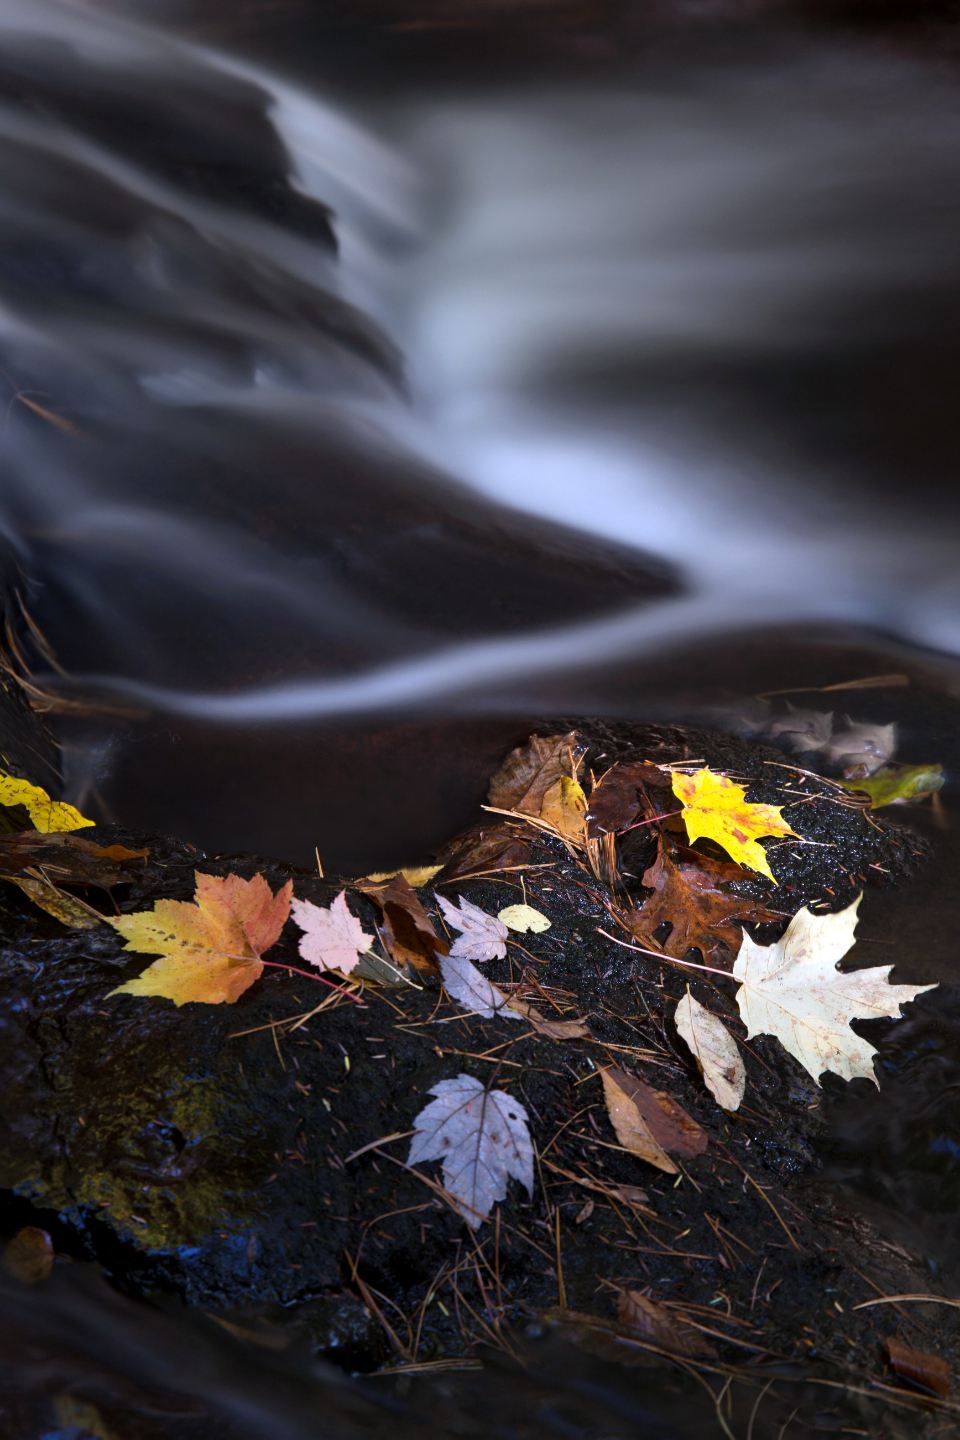 autumn leaves river water stream fall foliage season wet nature outdoors environment climate maple leaf flowing